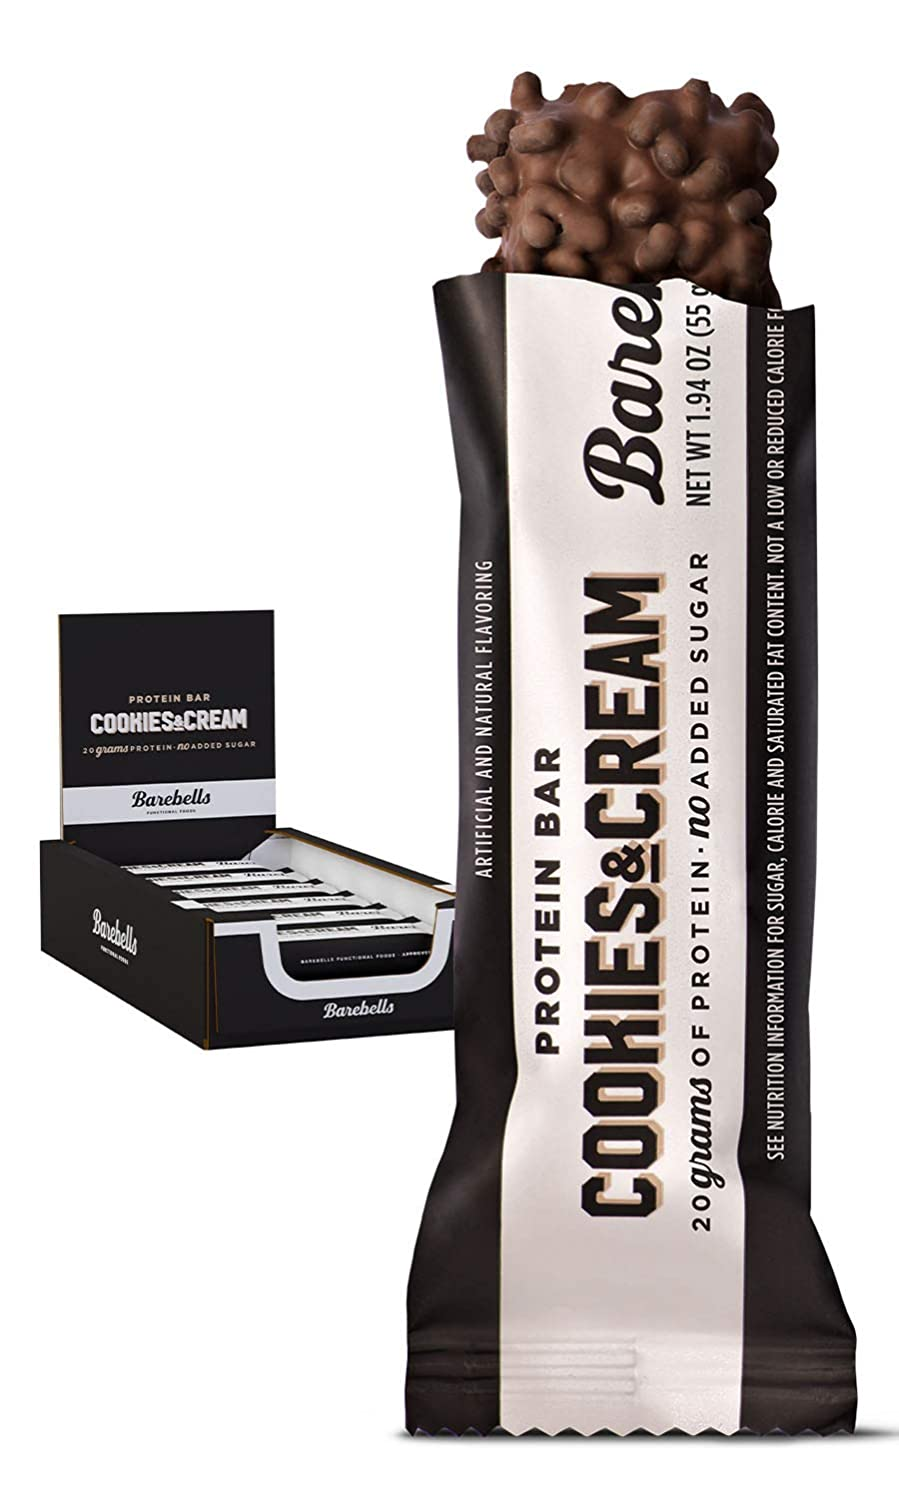 Barebells Protein Bar - Cookies & Cream 24 Bars x 55g